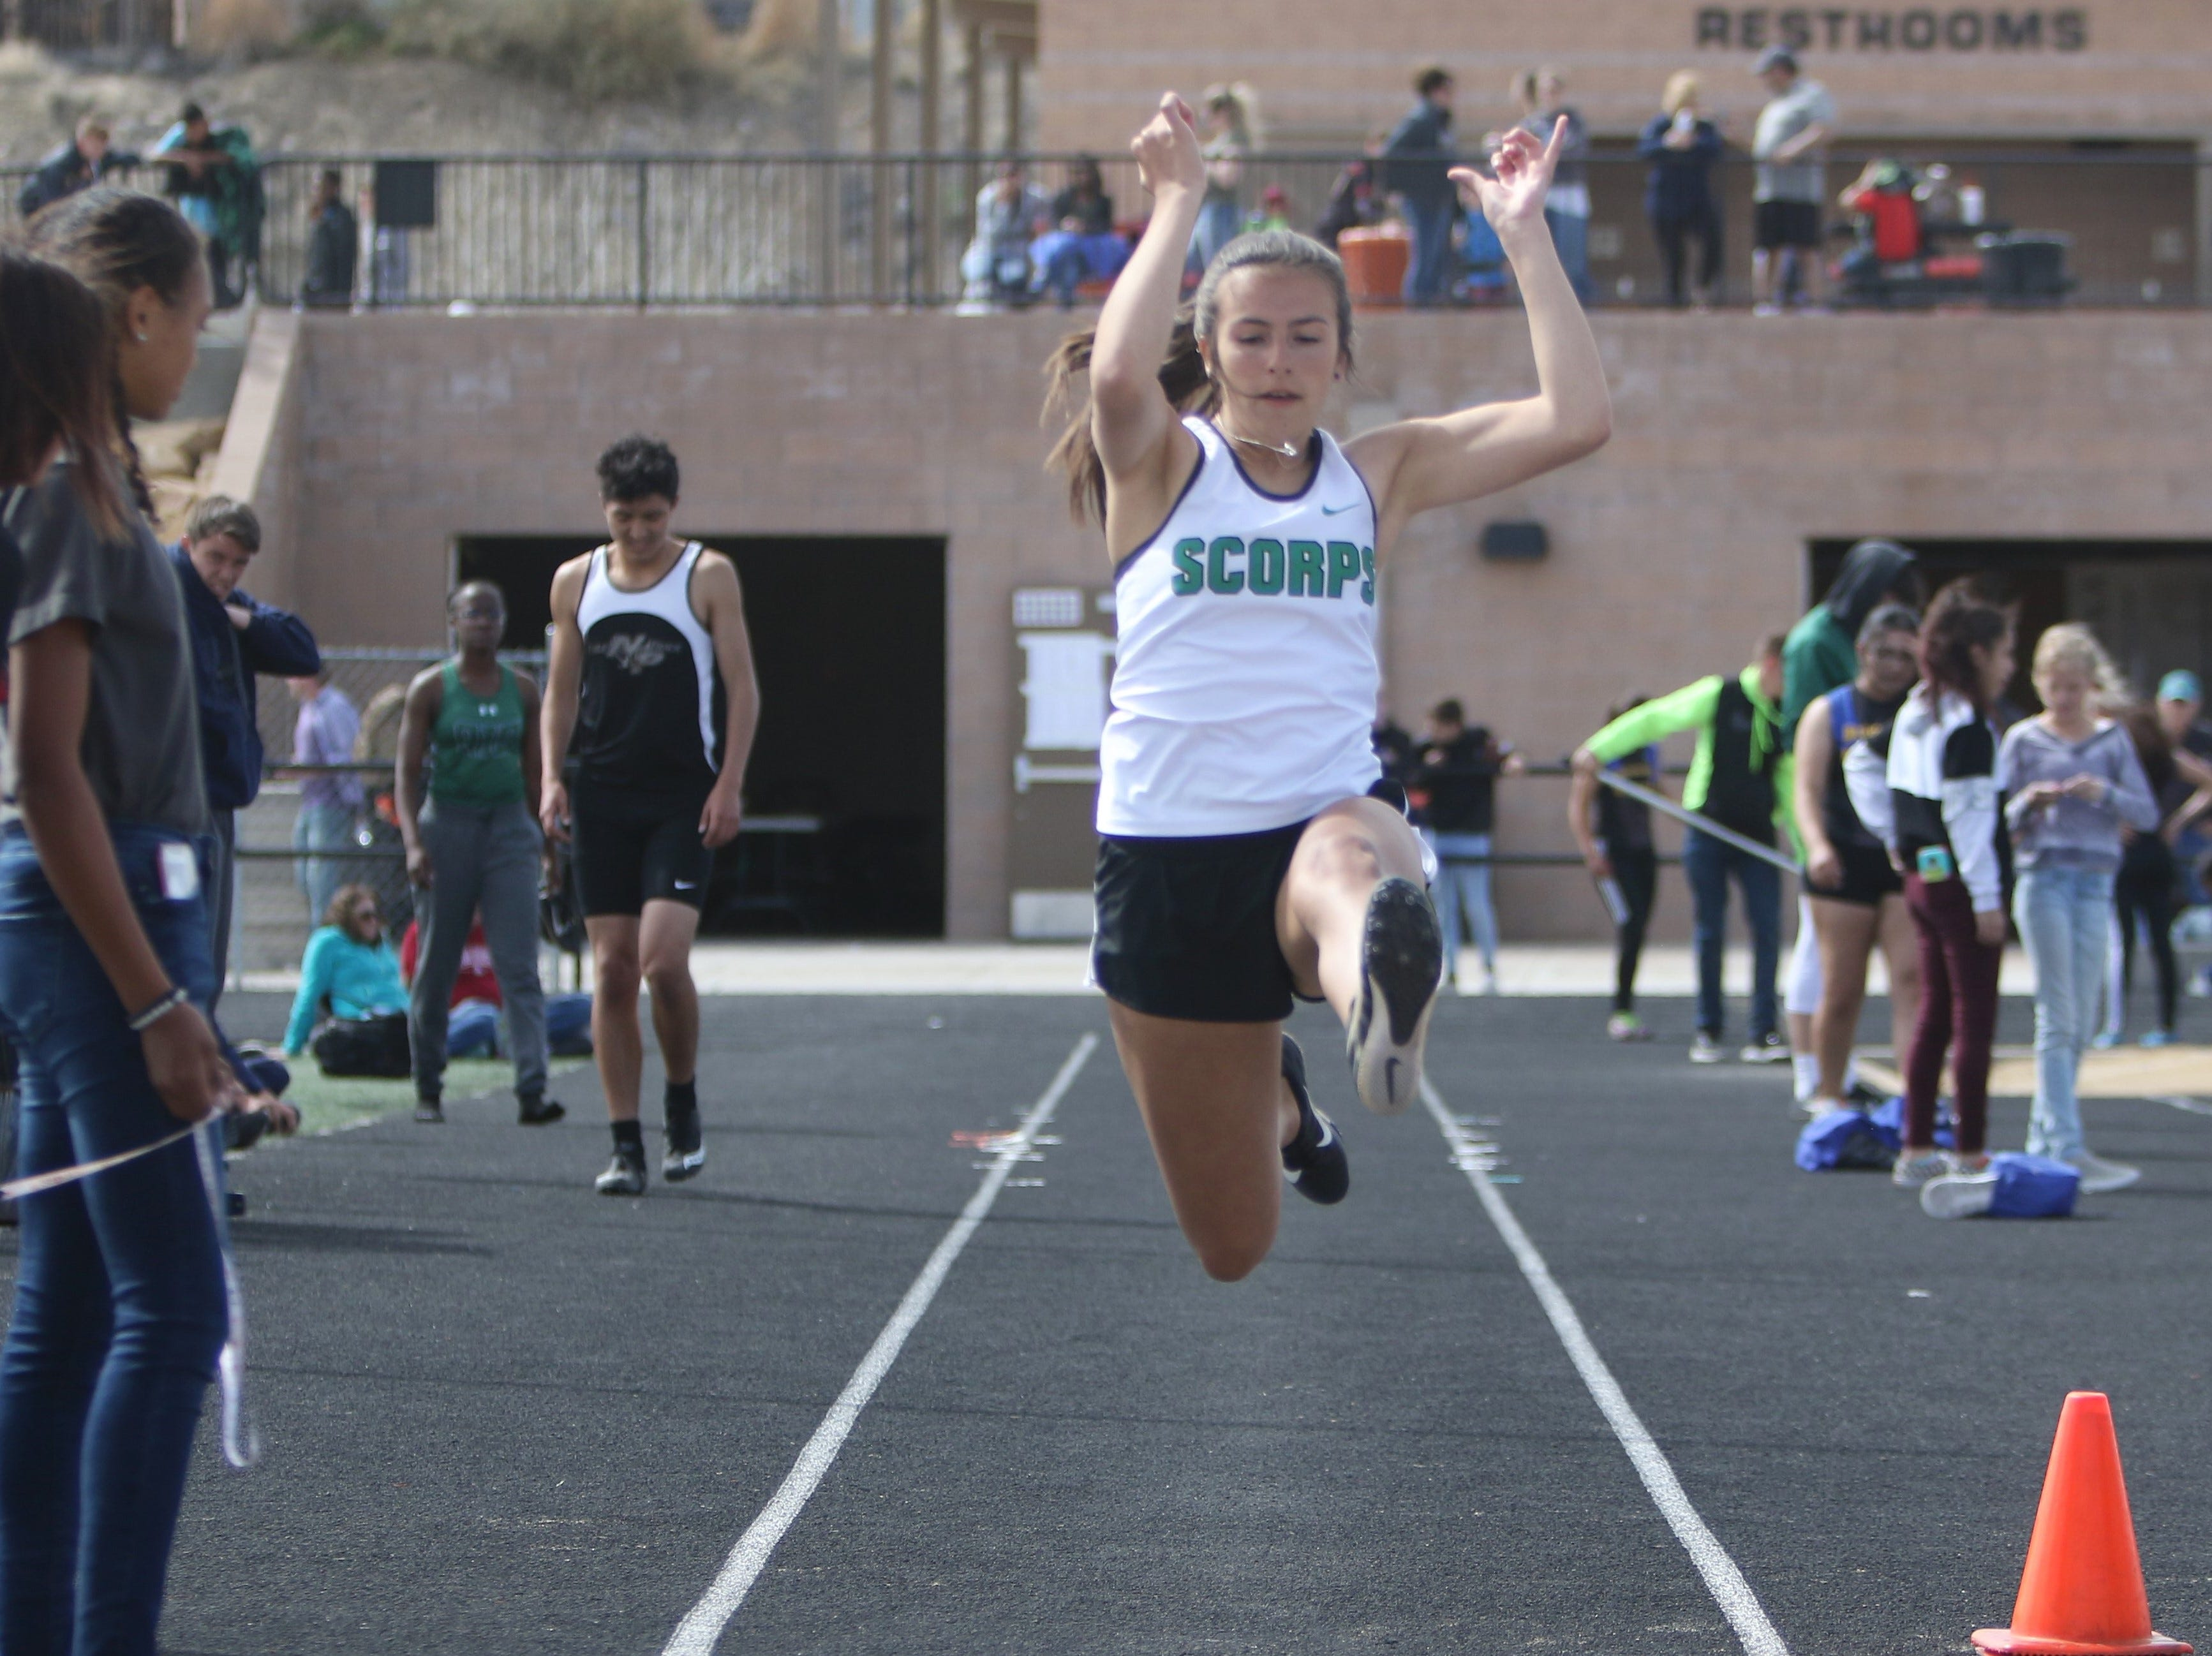 Farmington's Aubrey Jaeger catapults herself into the dirt in the girls long jump during Friday's Top Gun Invitational at Aztec.